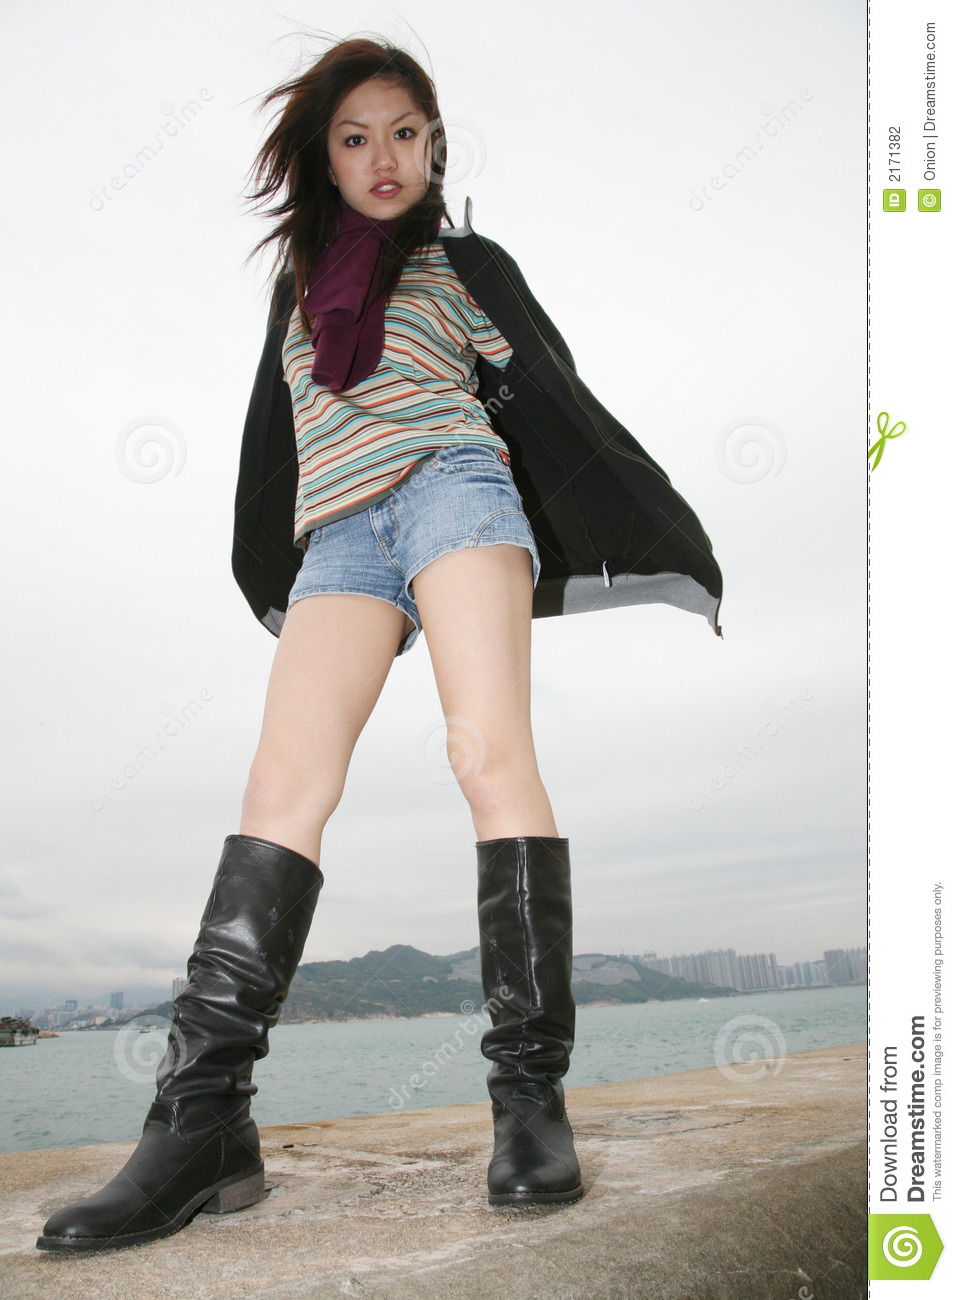 Asian boot girl in